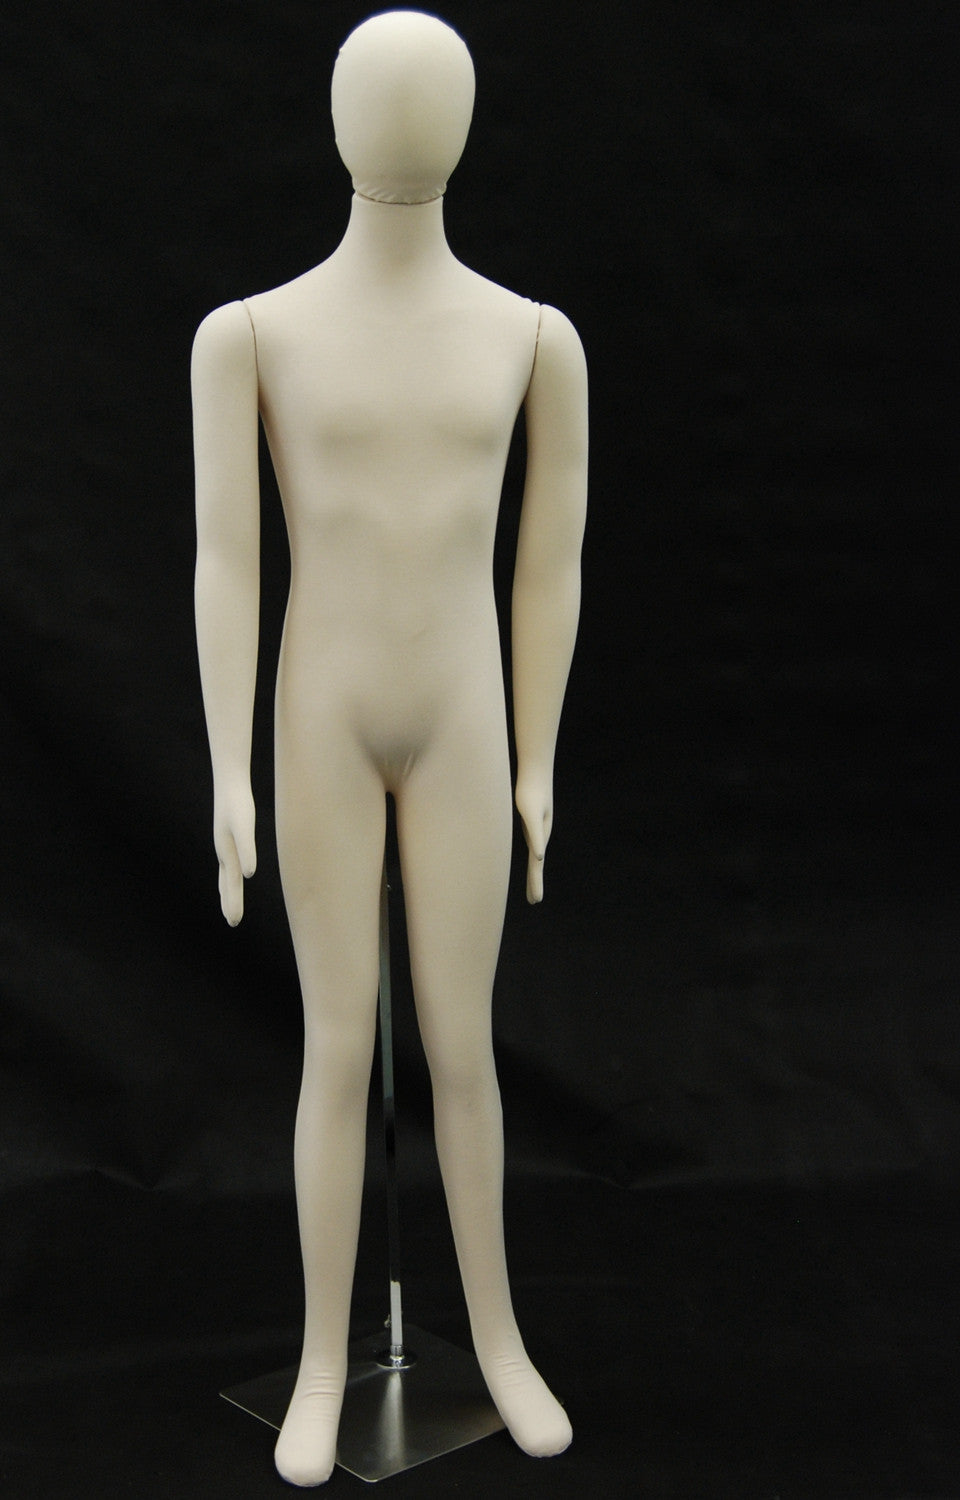 Posable & Bendable Male Mannequin #1